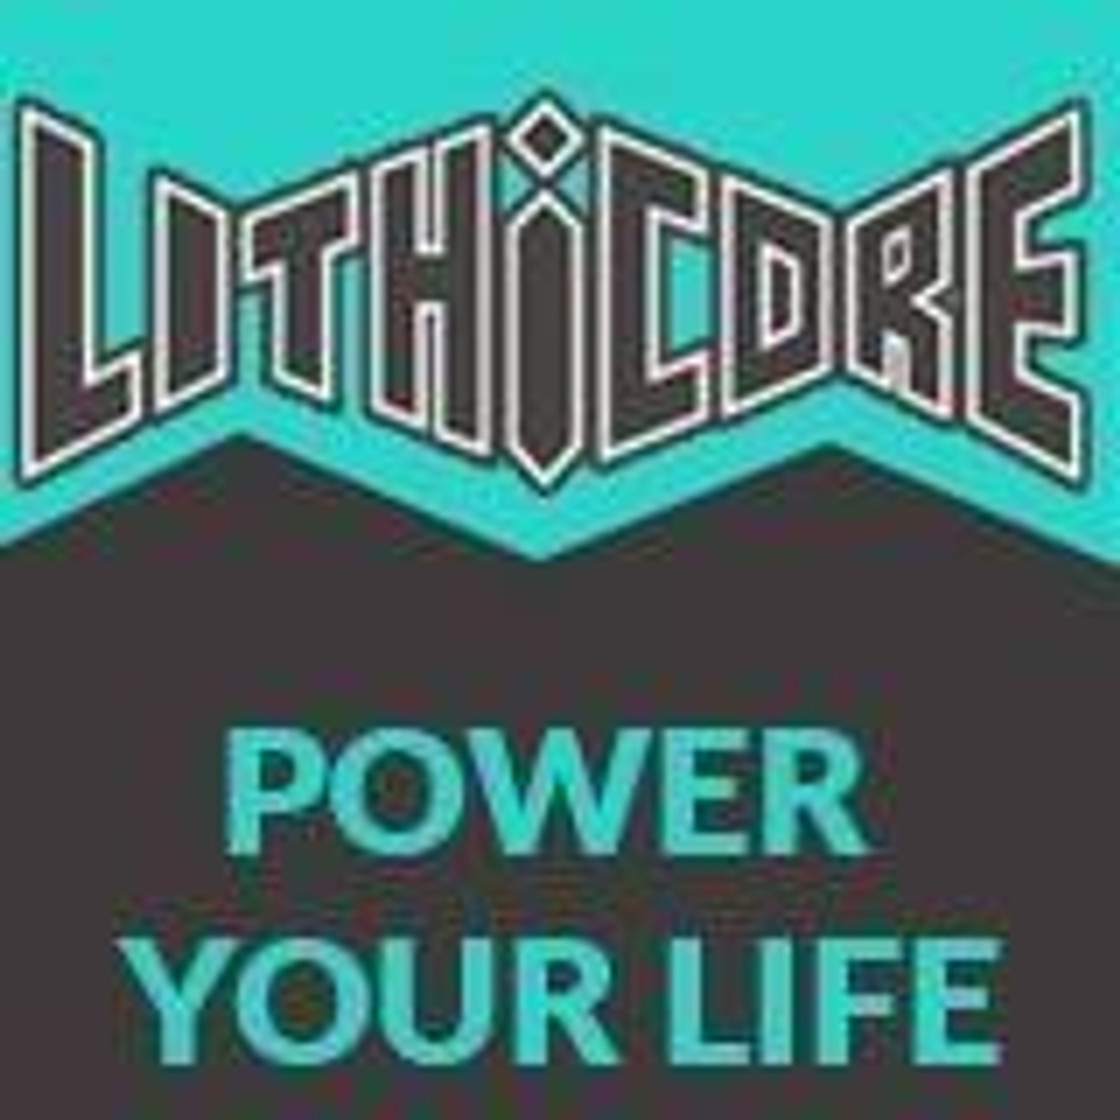 LITHICORE battery